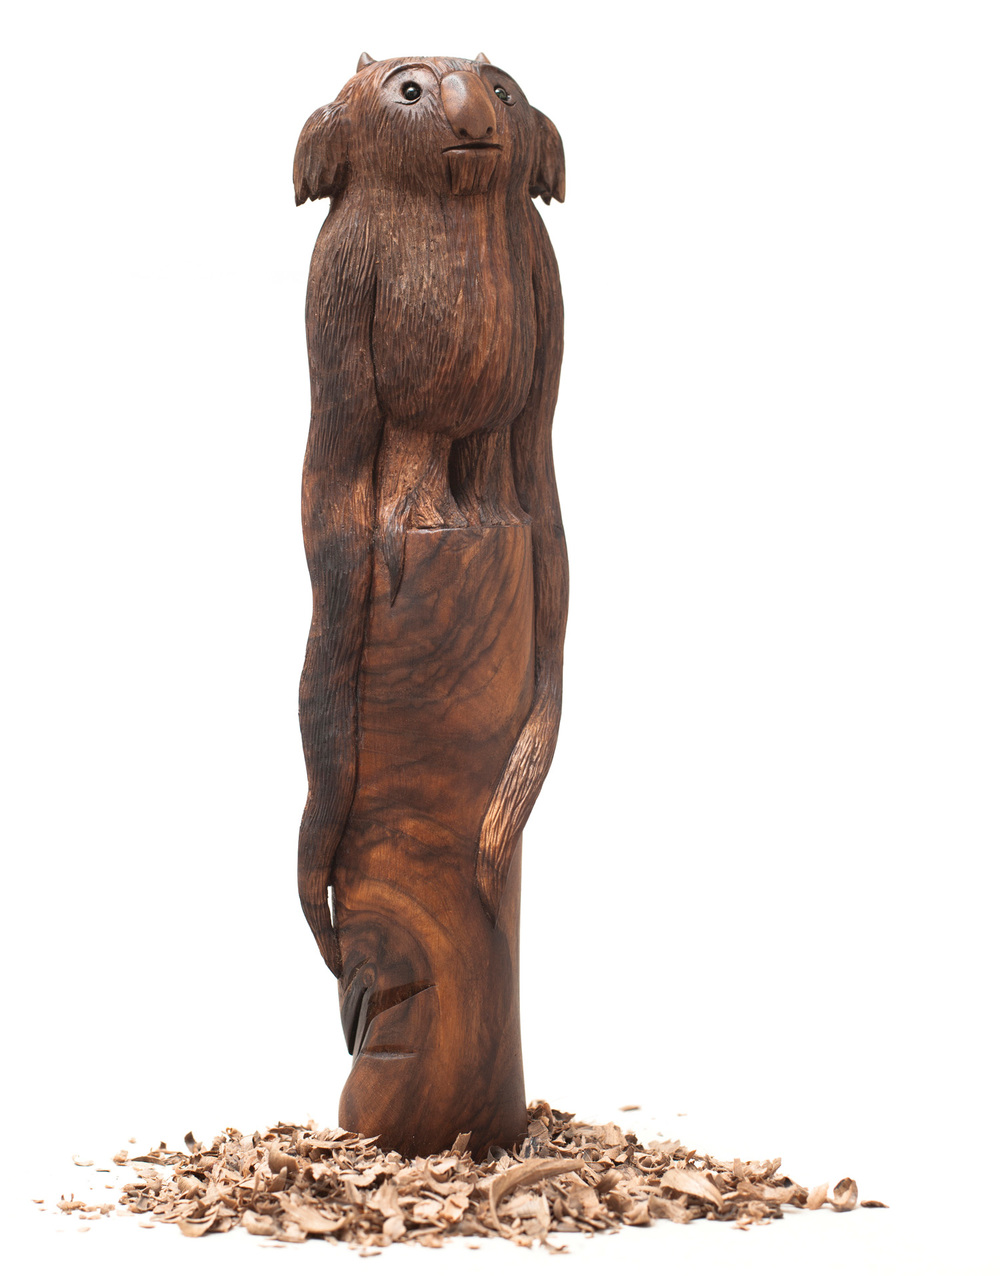 dropbear-wood-woodcarving-character.jpg